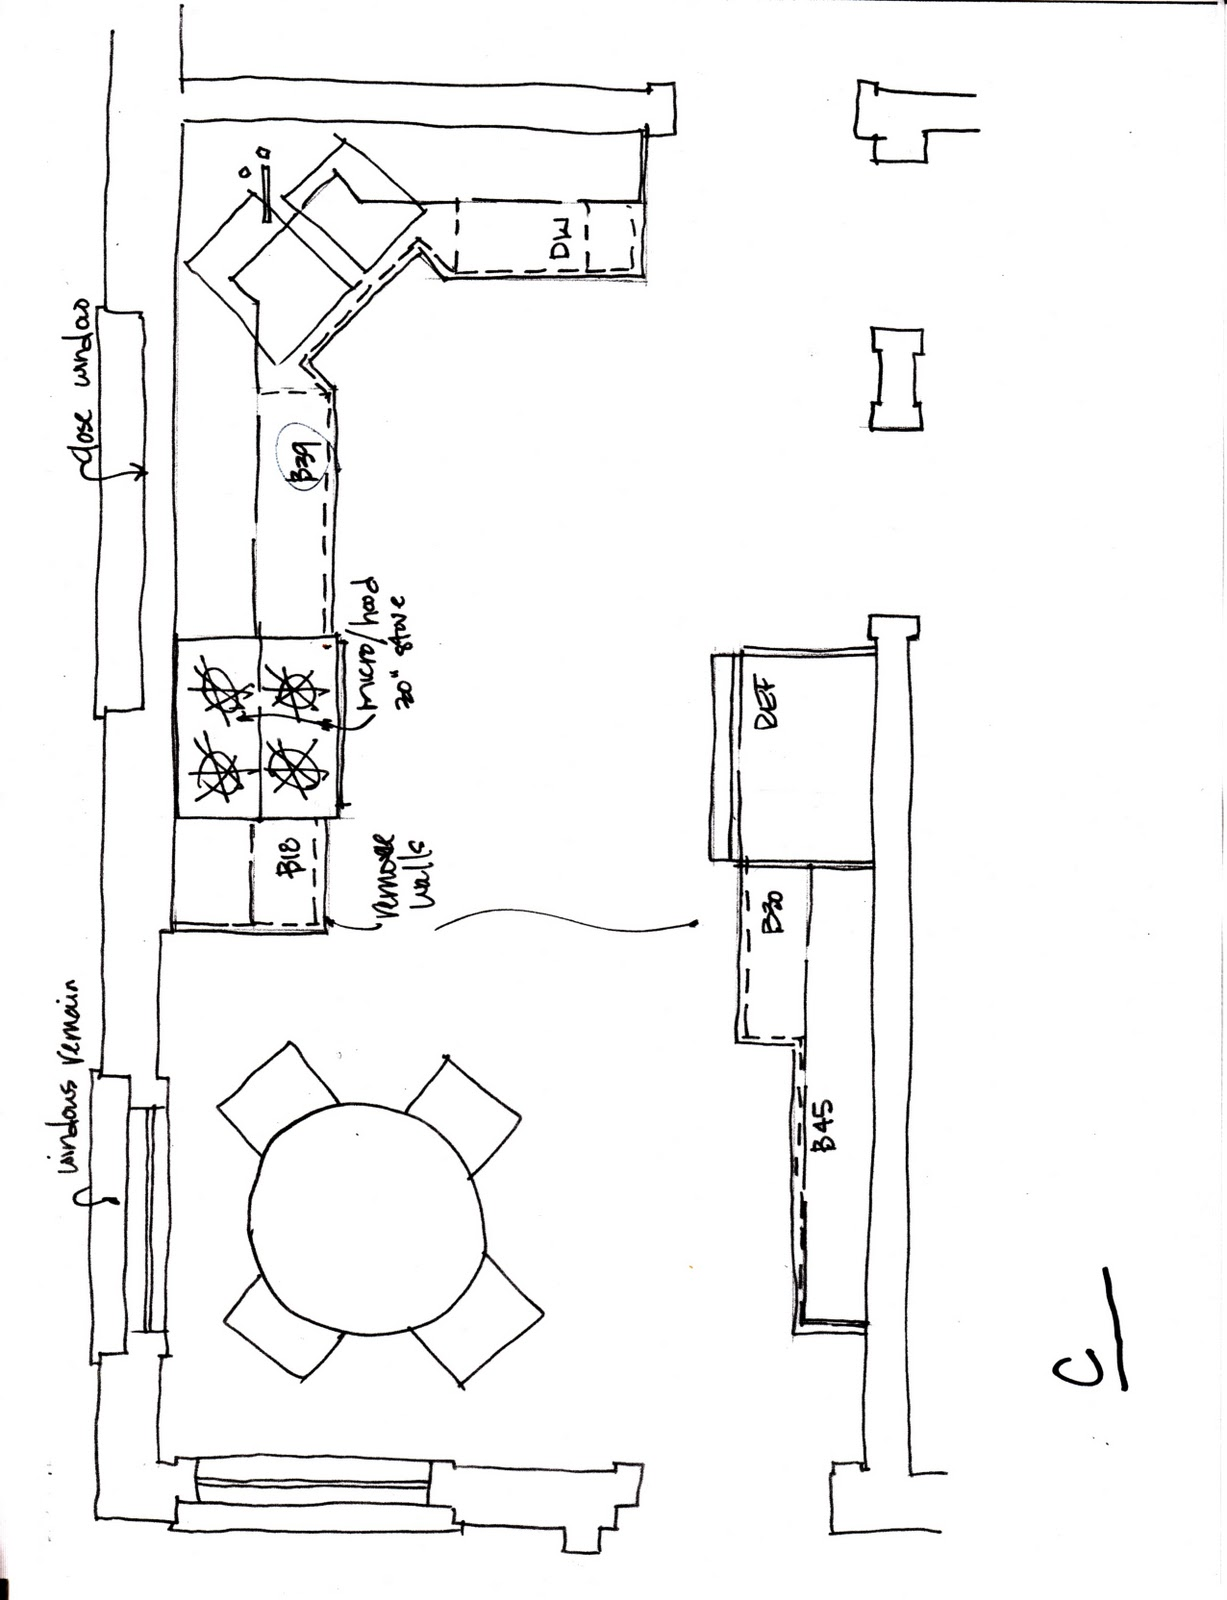 Small kitchen layouts plans afreakatheart - Small kitchen floor plans ...